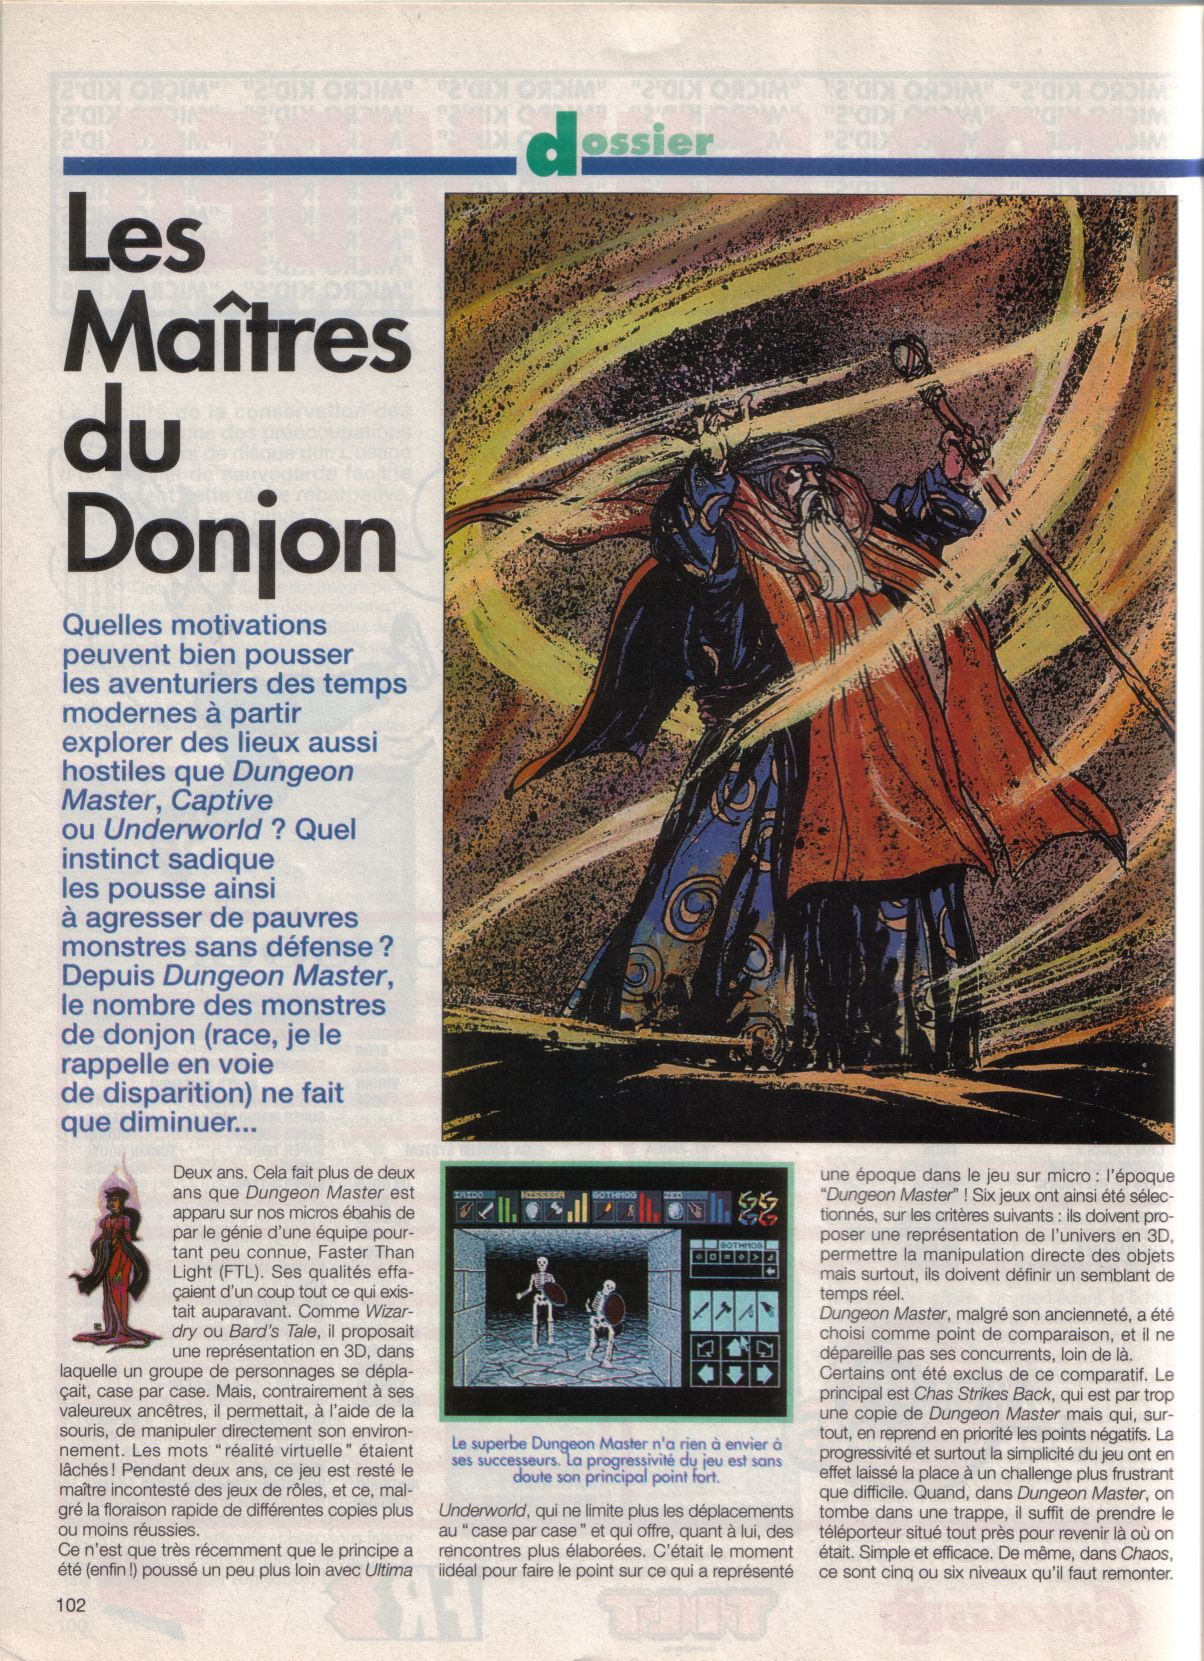 Dungeon Master Article published in French magazine 'Tilt', Issue #105, September 1992, Page 102